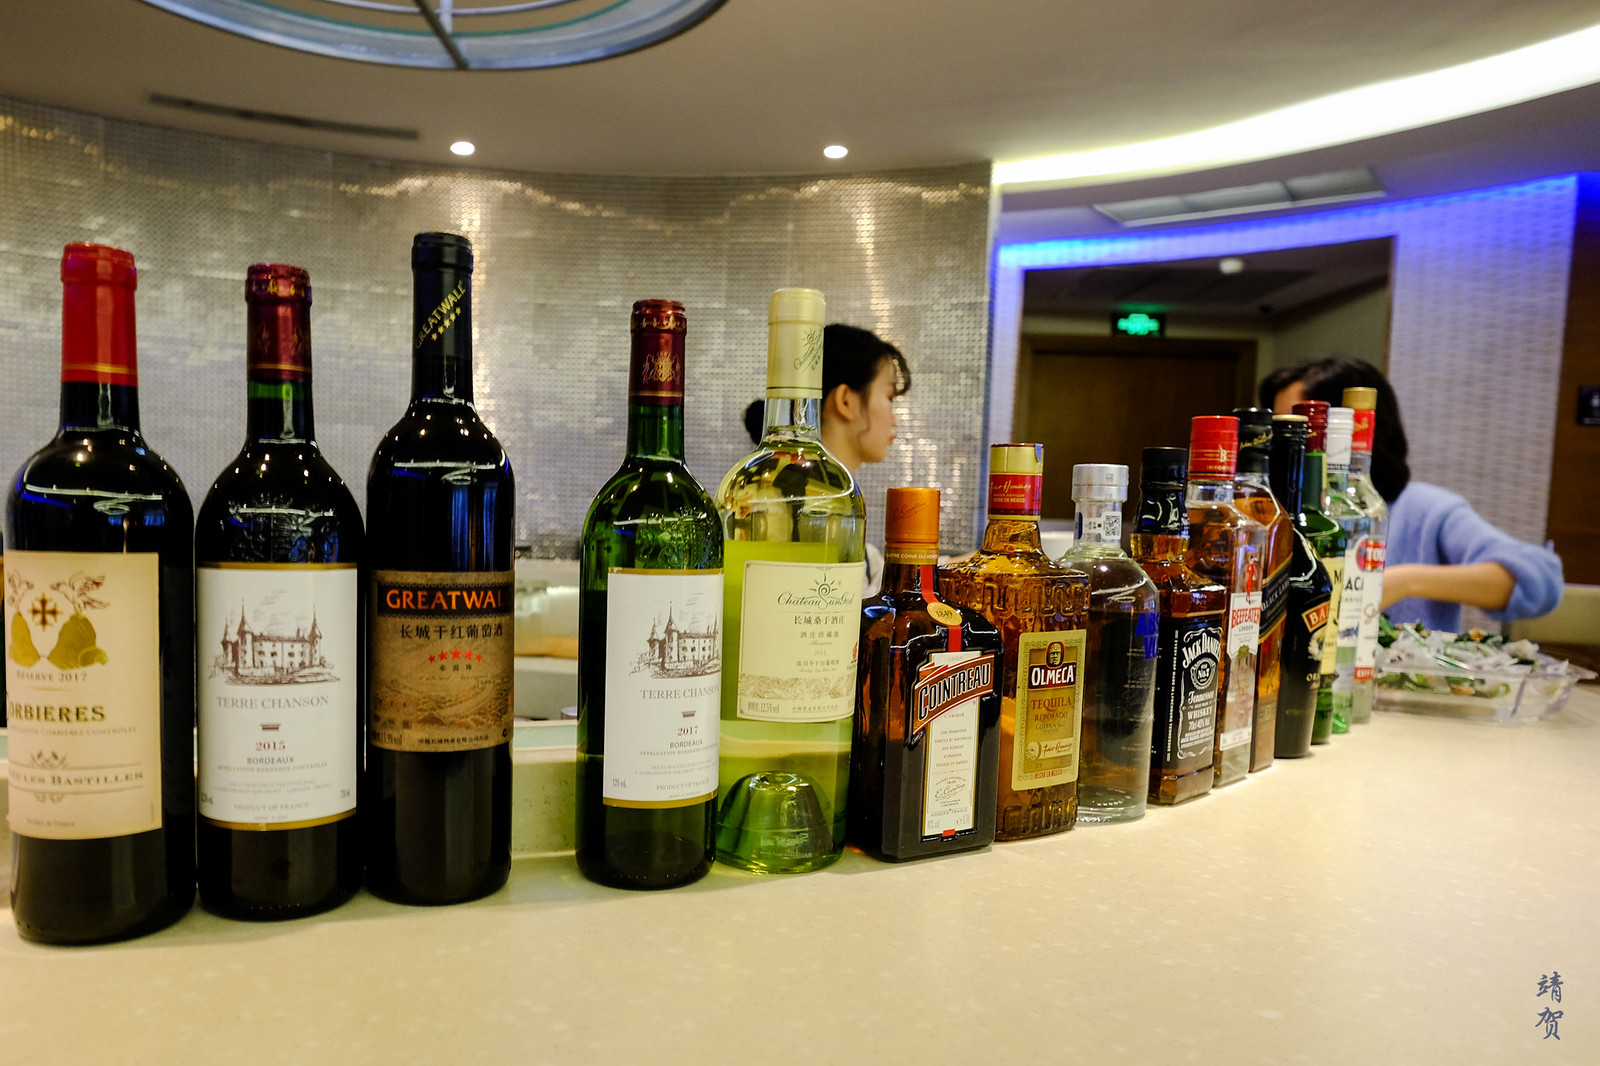 Wines and liquor in the bar